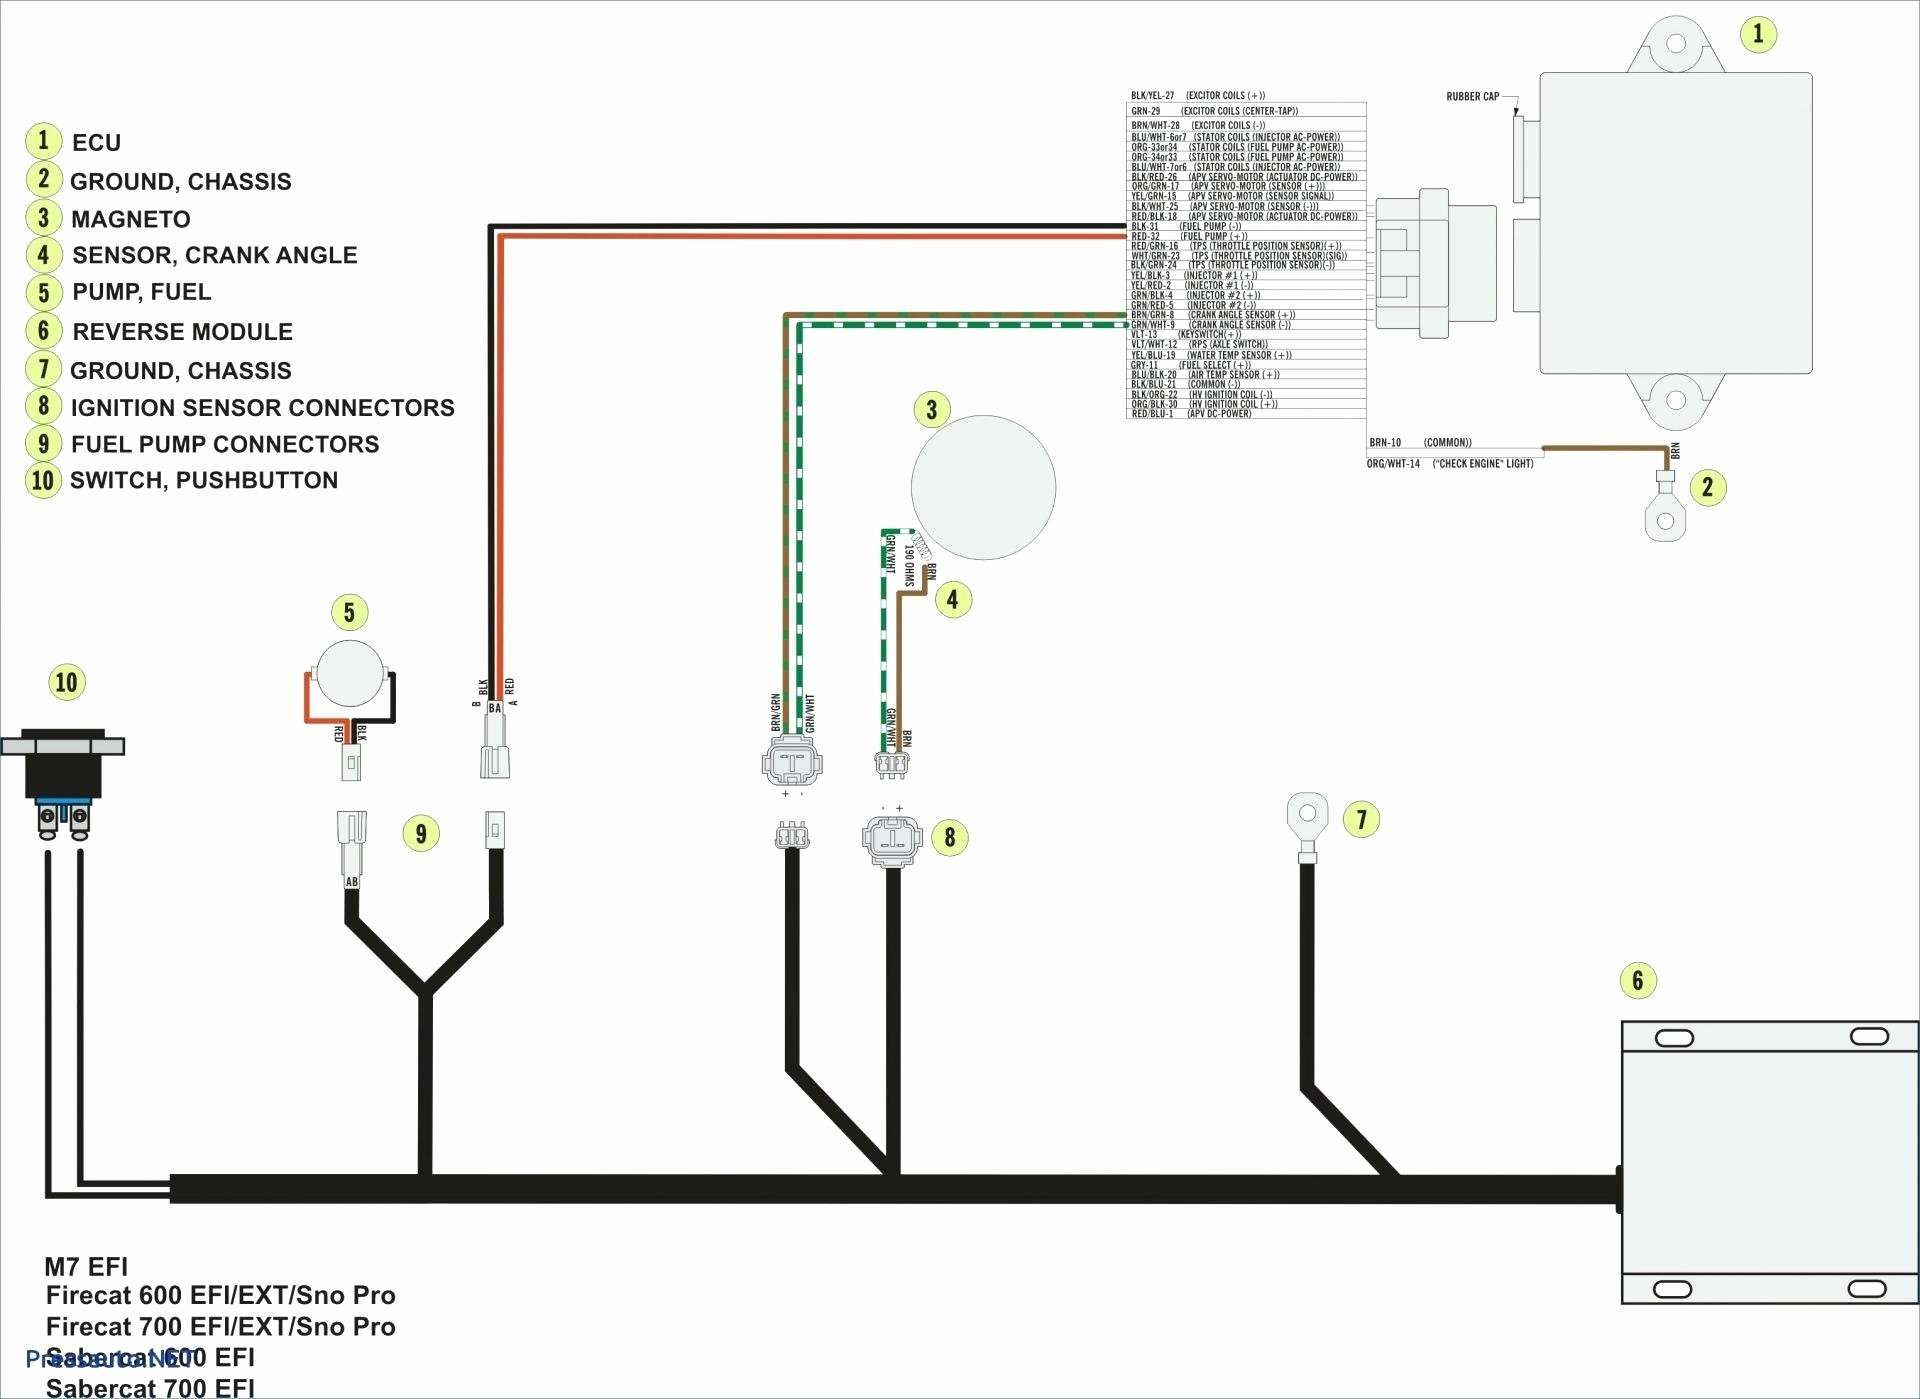 Wiring Diagram Bathroom. Lovely Wiring Diagram Bathroom. Bathroom Fan Light  Wiring Diagram Mik… | Bathroom heater fan, Amazing bathrooms, Bathroom  exhaust fan light | Bath Heater Fan Switch Light Wiring Diagram |  | Pinterest